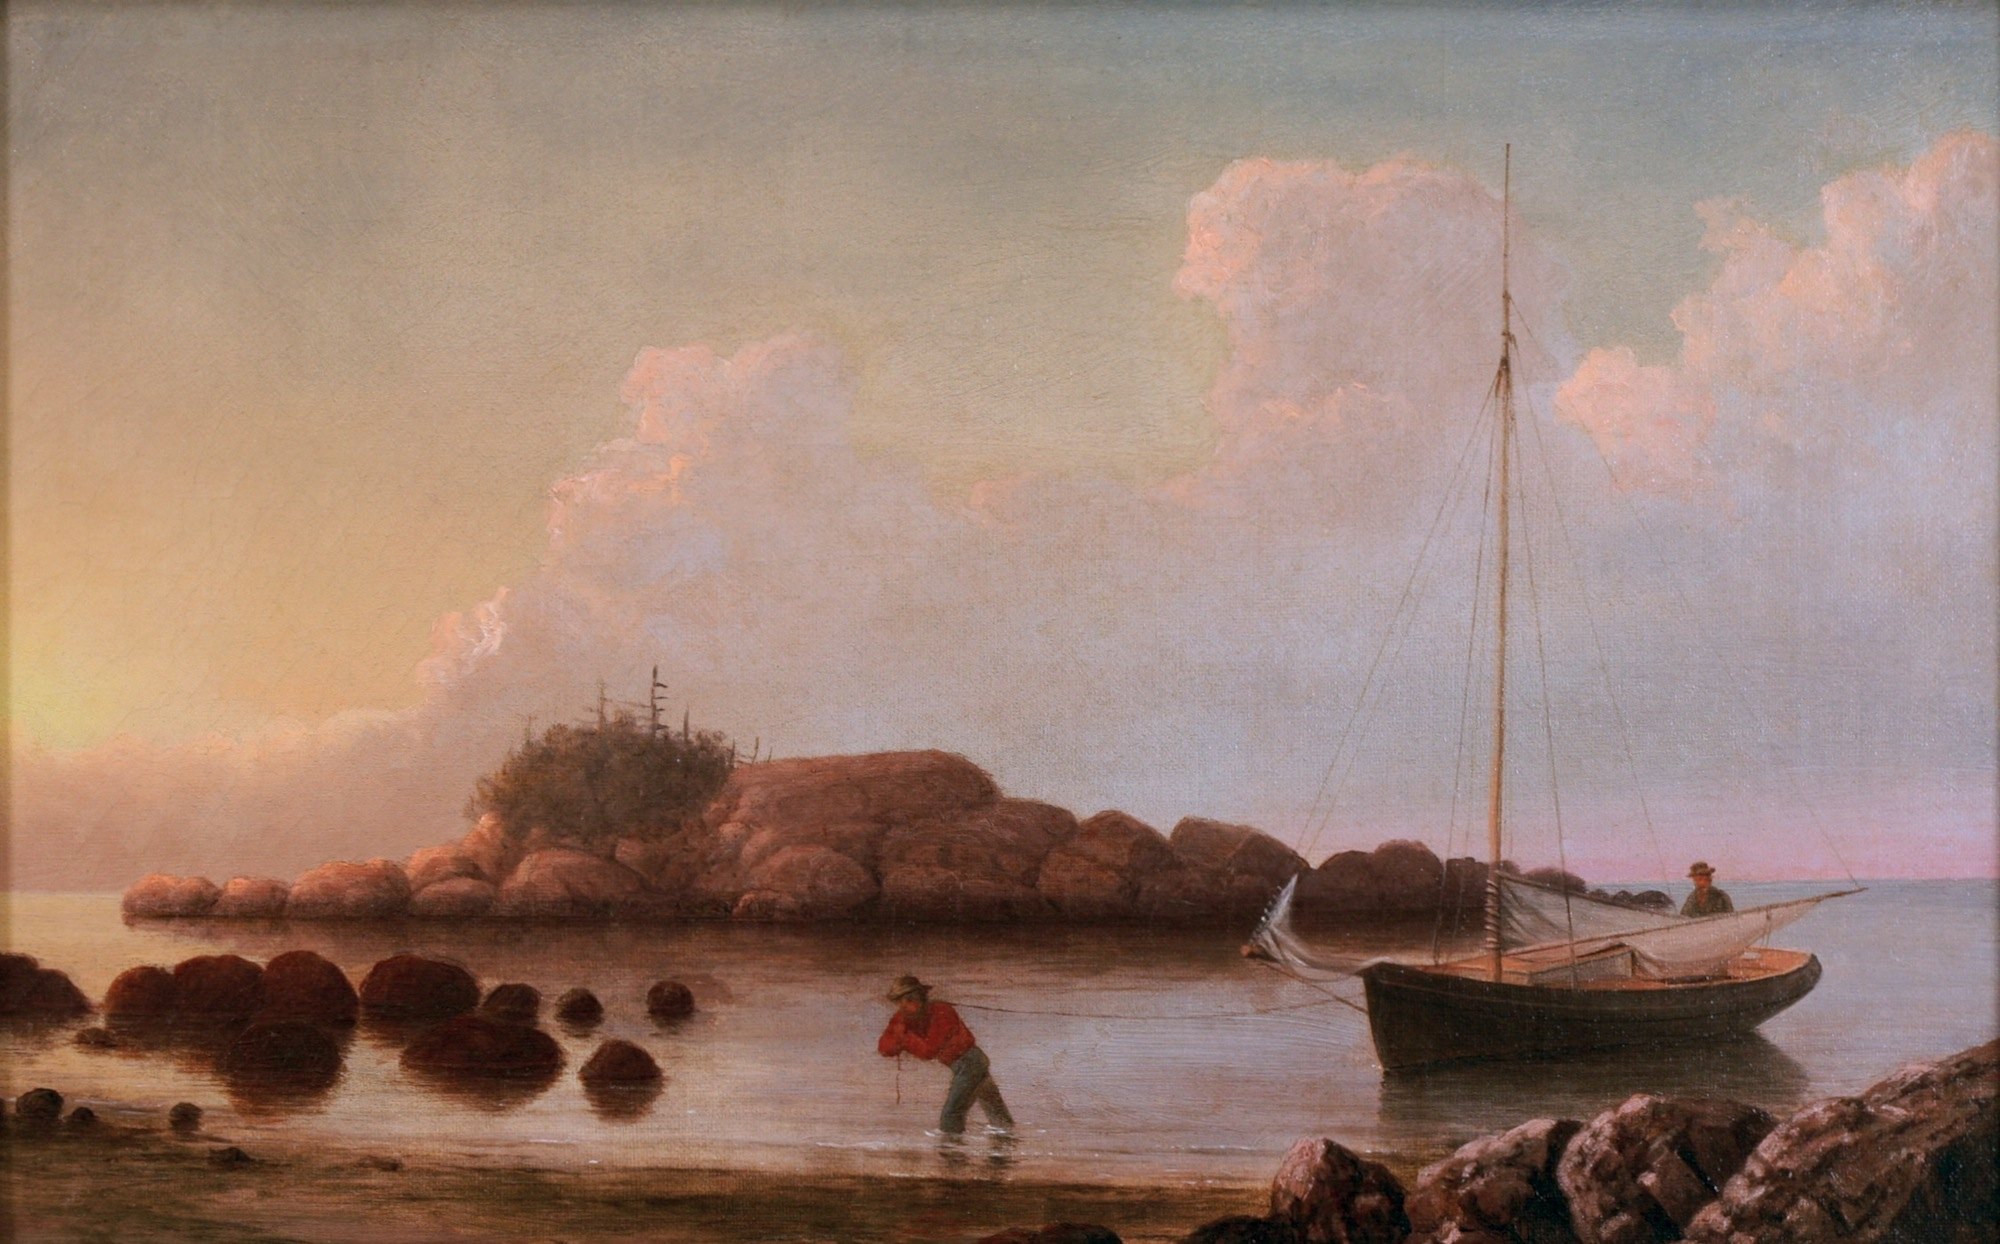 Coming Ashore near Brace's Rock, Gloucester, Massachusetts, c.1860 (inv. 60) 10 x 15 3/4 in. Private collection, On loan to Minnesota Marine Art Museum, Winona, since September 8, 2005.